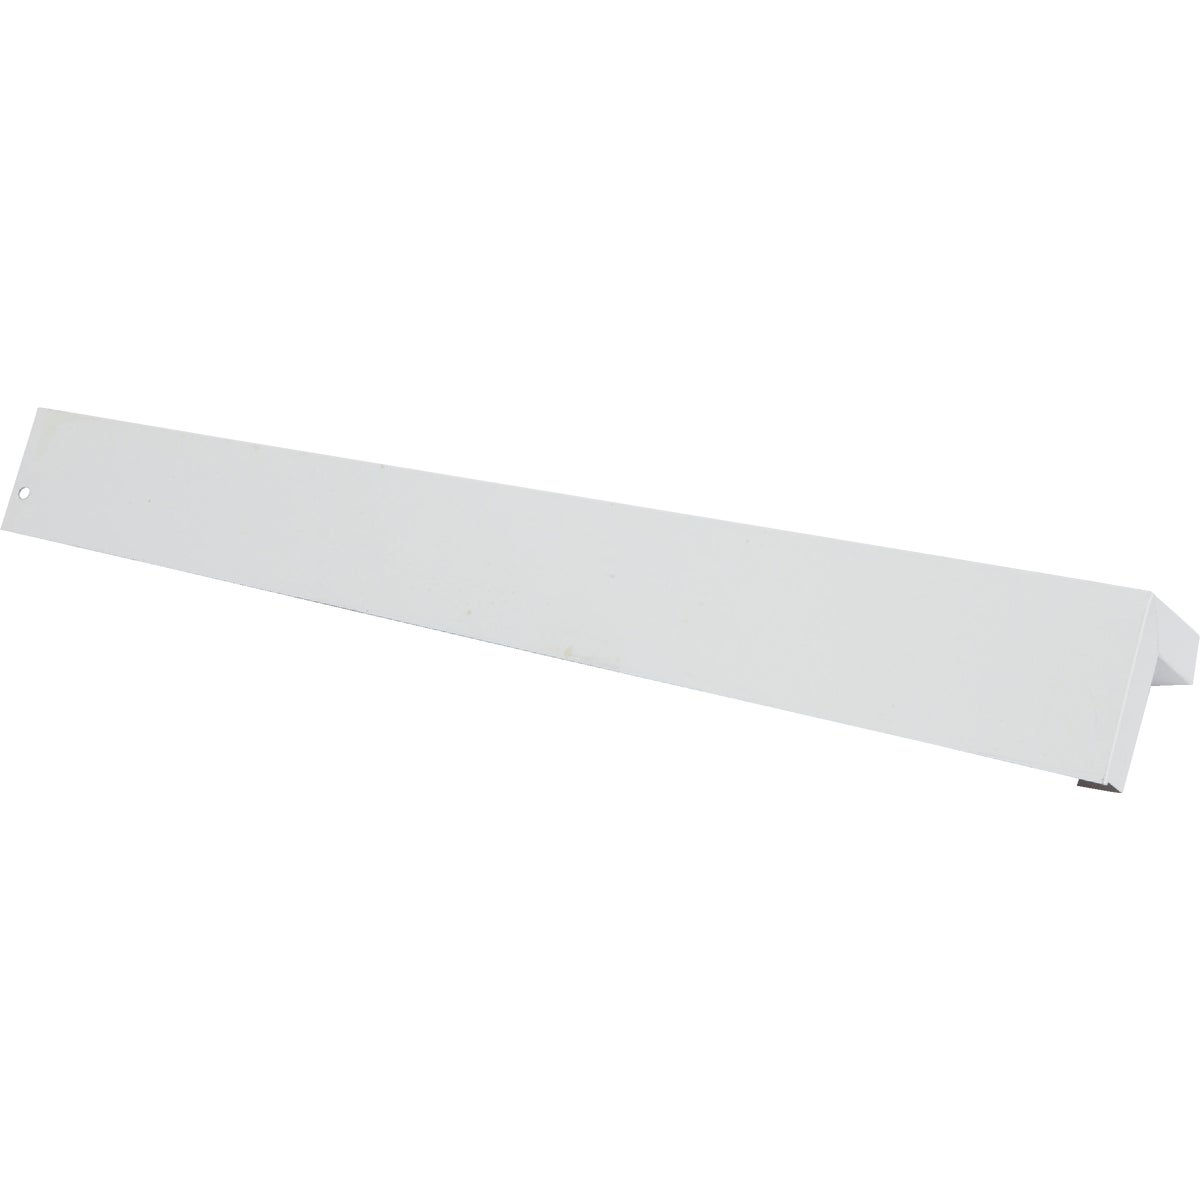 3/8X12 ALUM SIDE CORNER - 61026 by Amerimax Home Prod